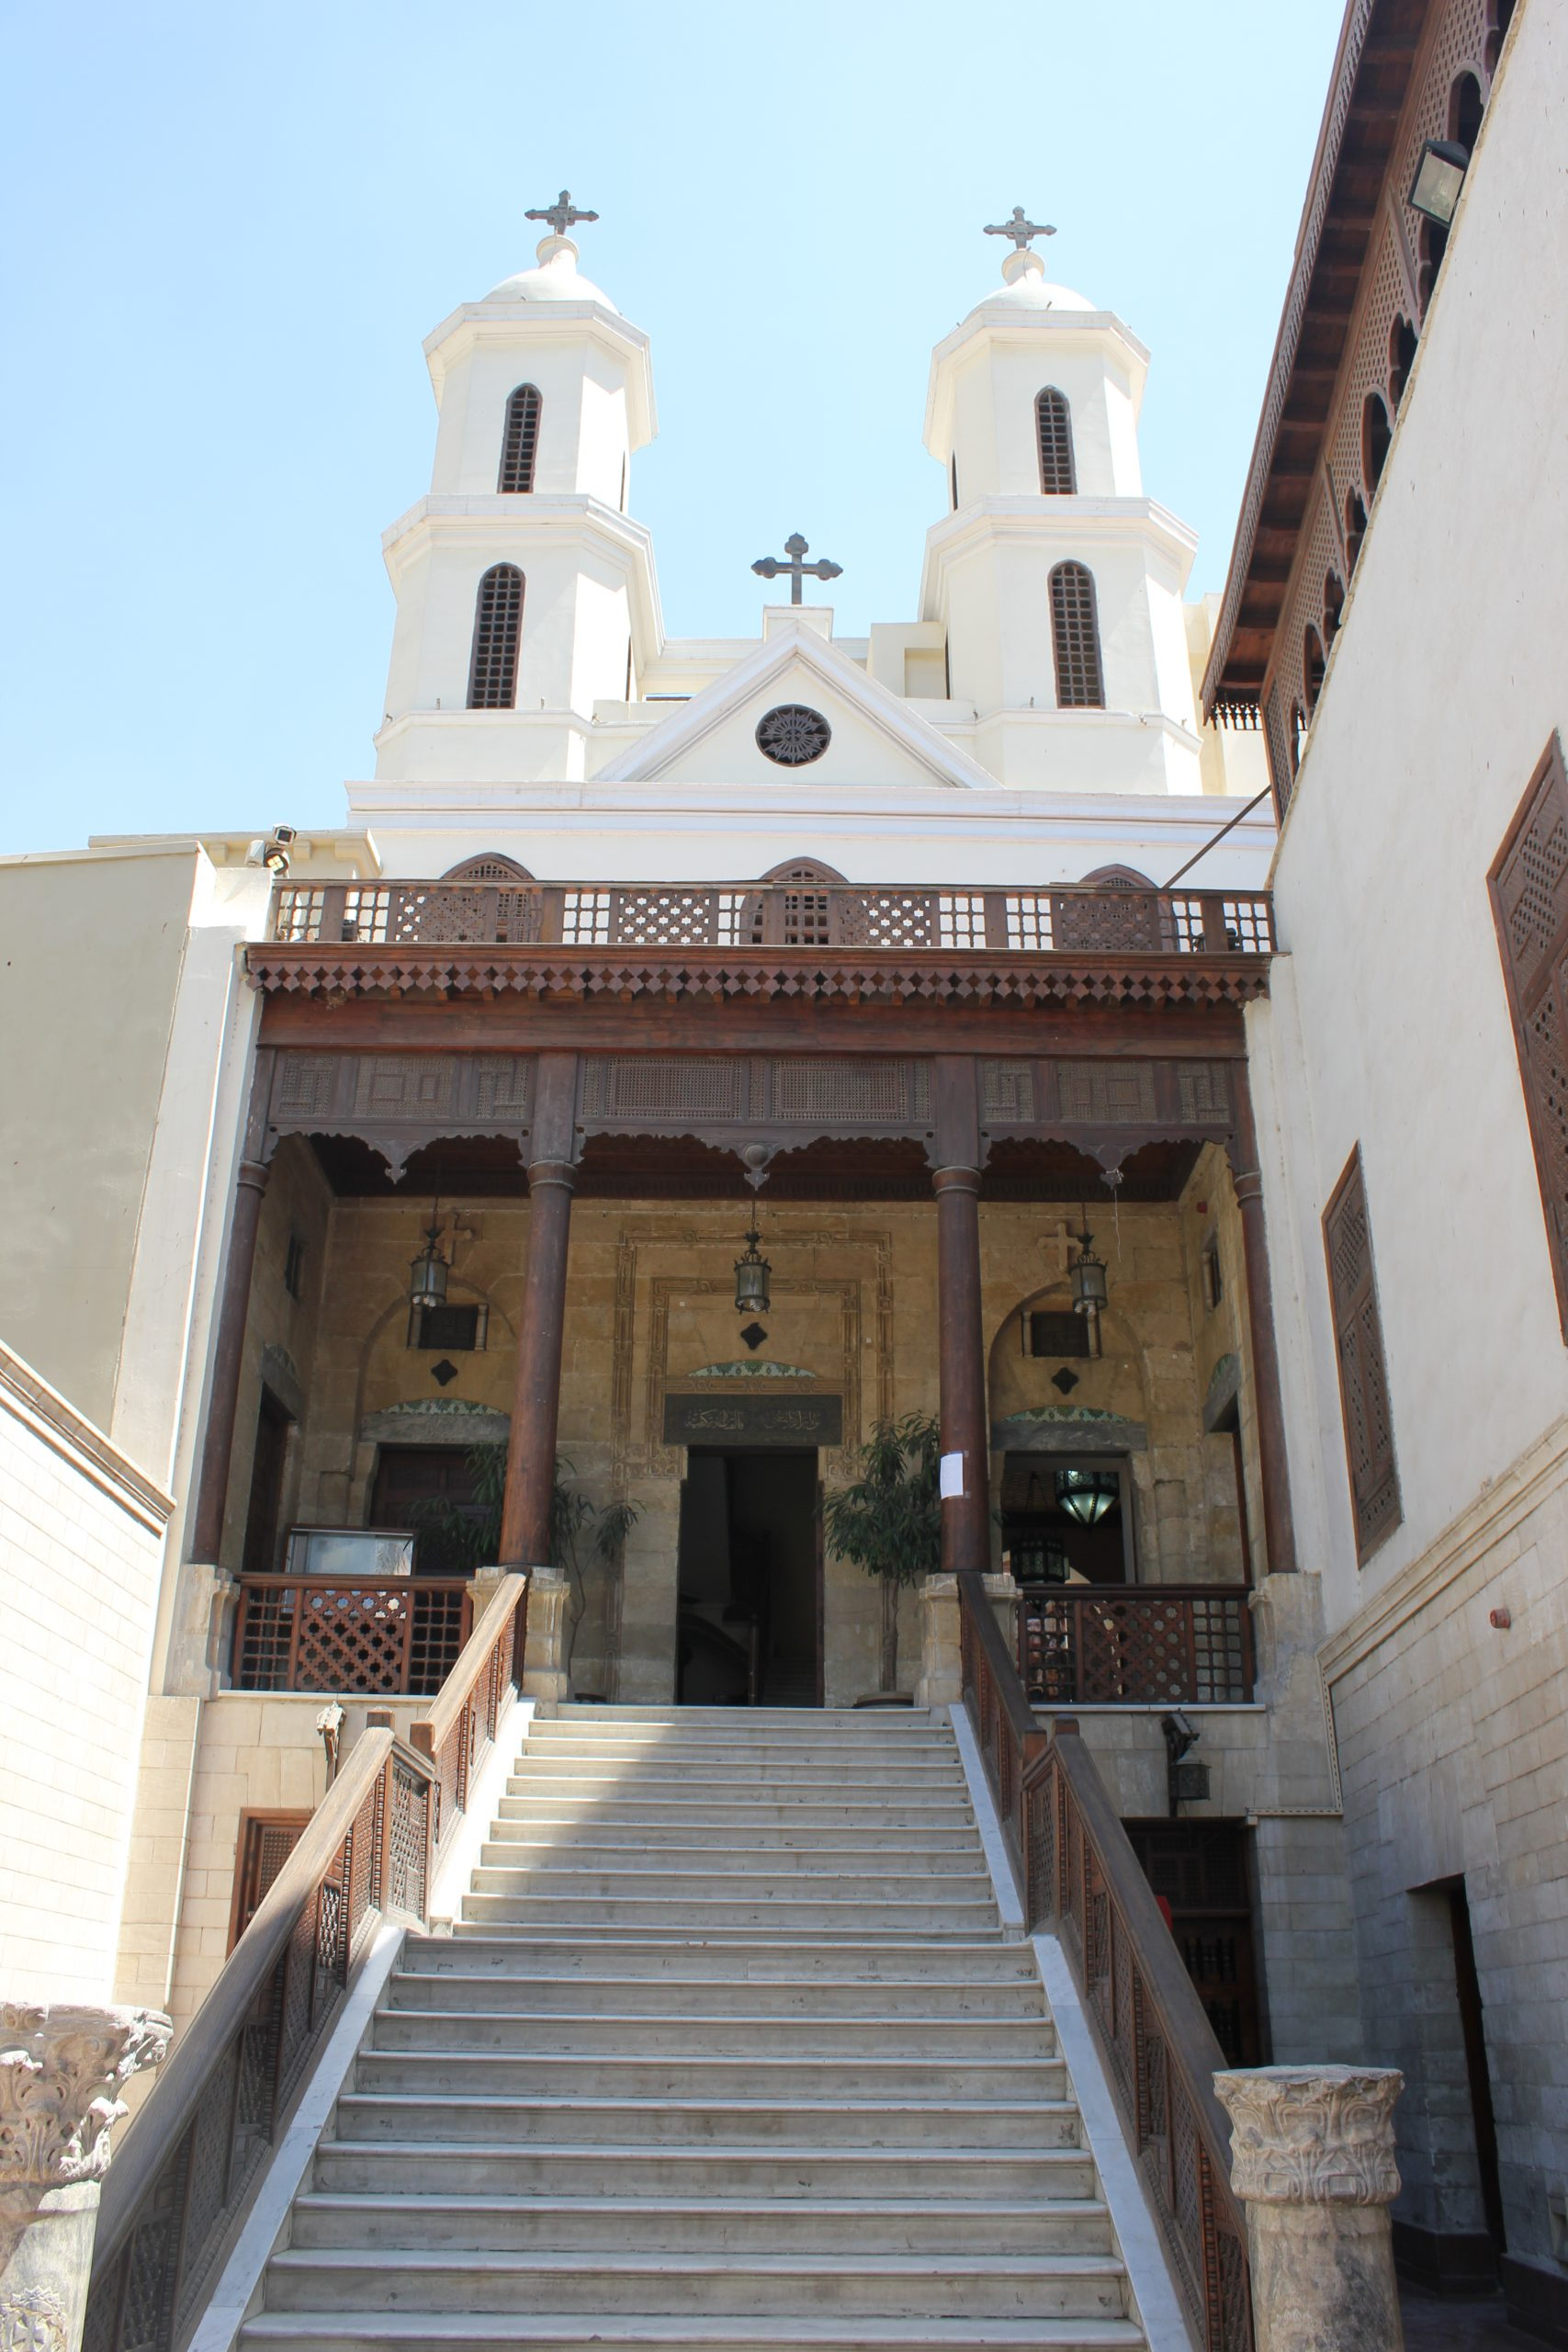 Cernys' Journeys: Coptic Cairo, Hanging Church - Cairo, Egypt